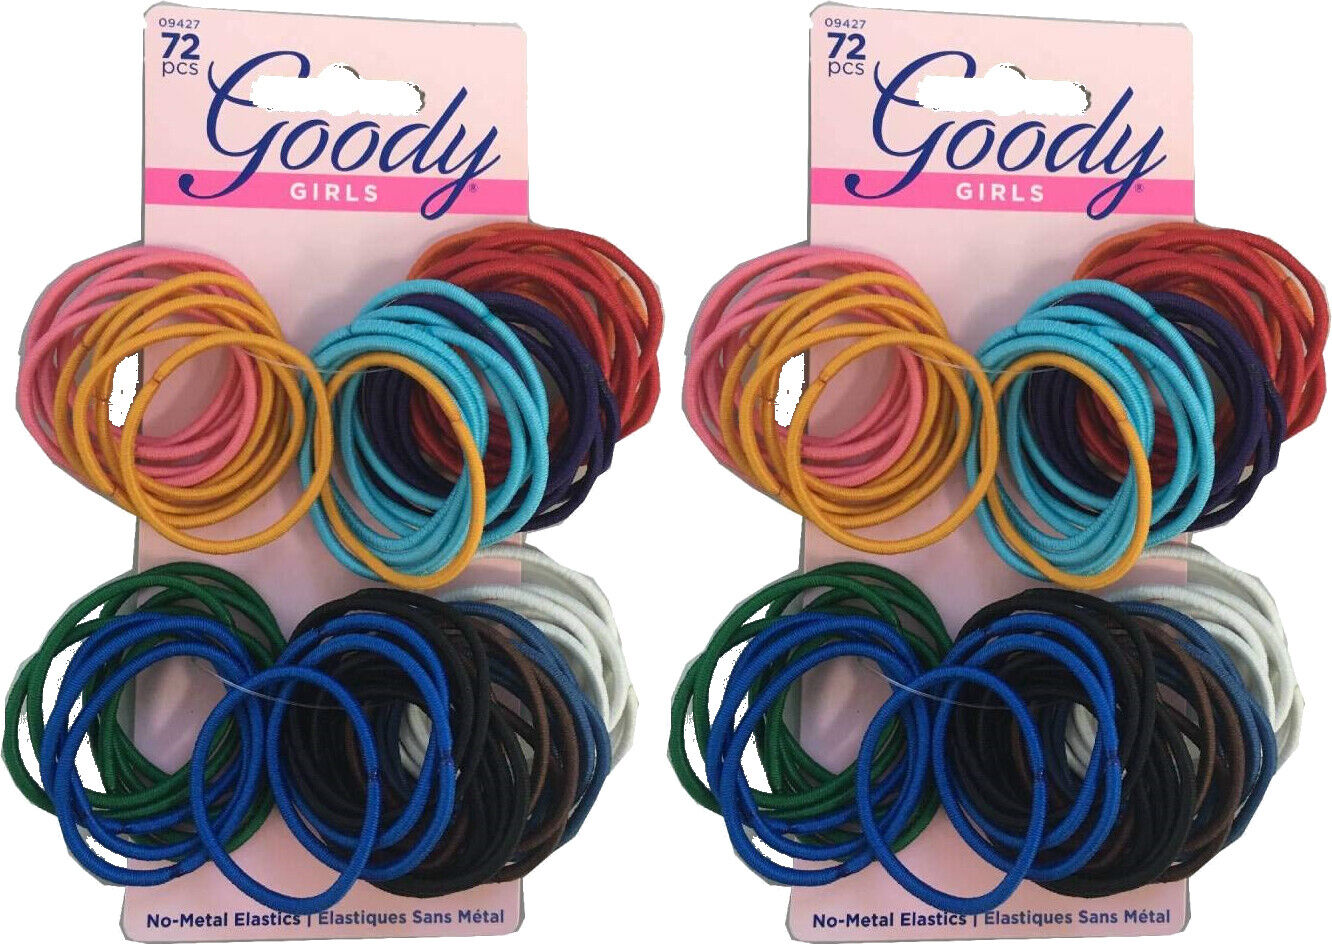 Goody Ouchless No Metal Gentle Elastics Gd09427 72 Pieces Pe